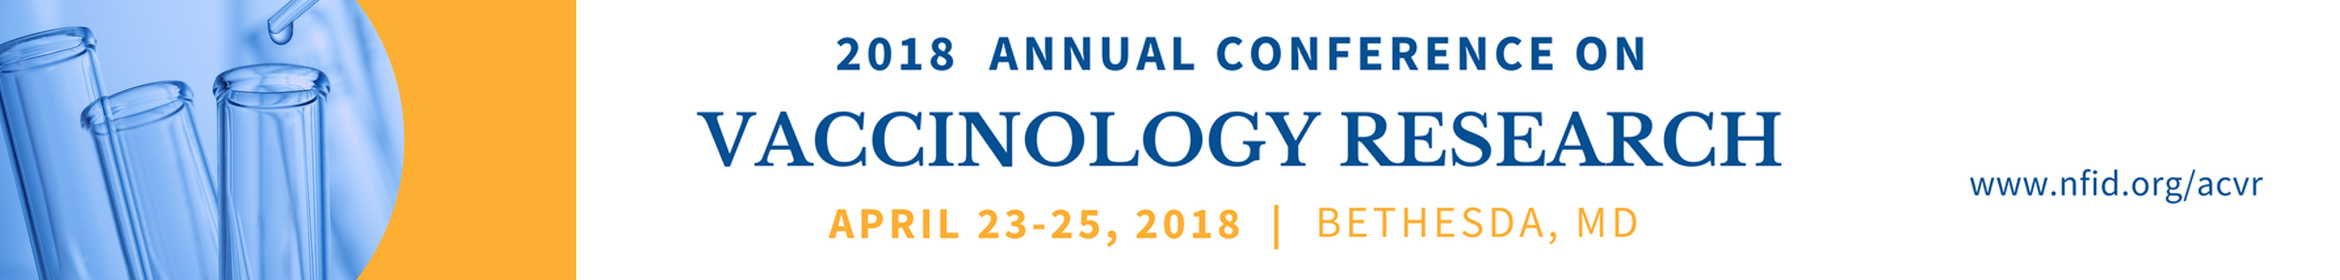 2018 Annual Conference on Vaccinology Research Main banner